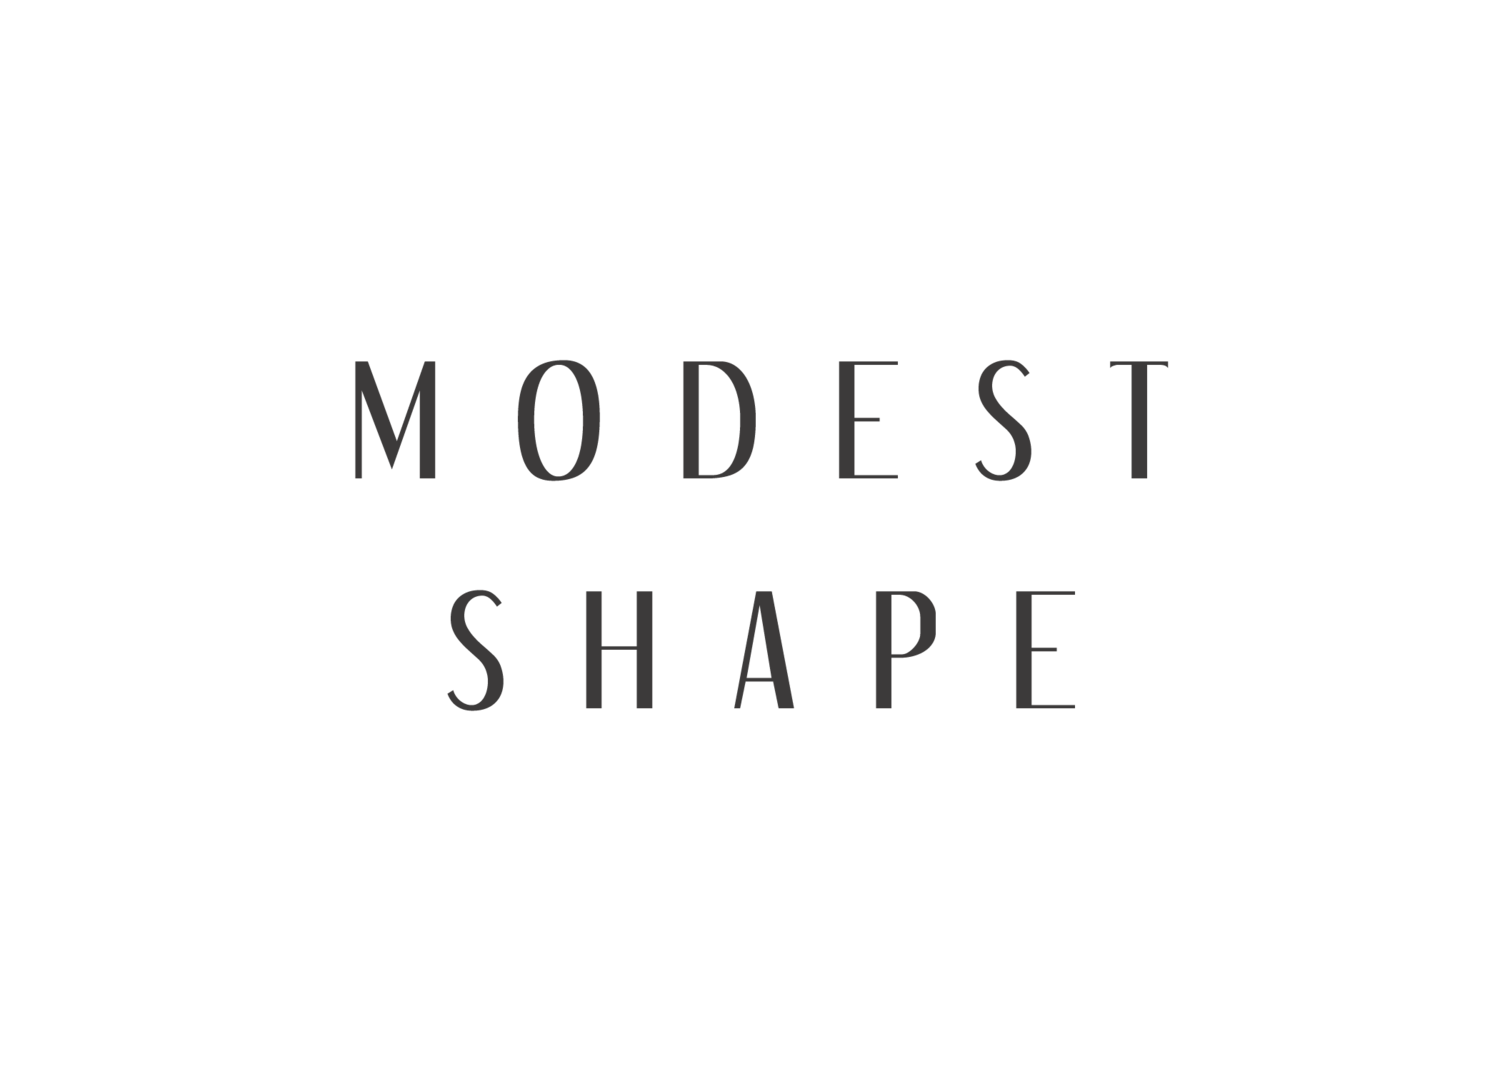 Modest Shape